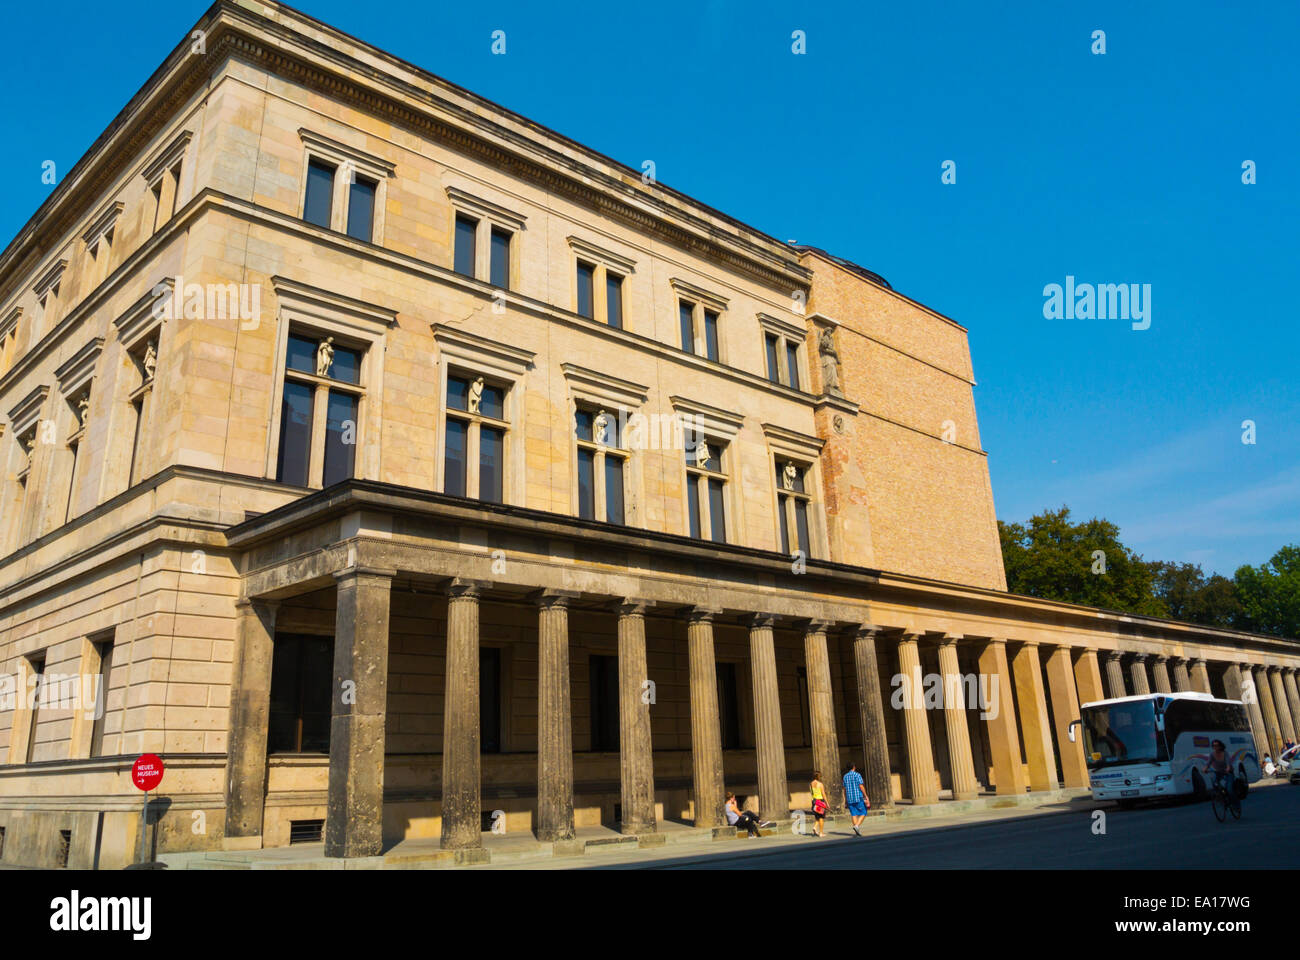 Neues Museum, Museumsinsel, the museum island, Mitte district, central Berlin, Germany Stock Photo